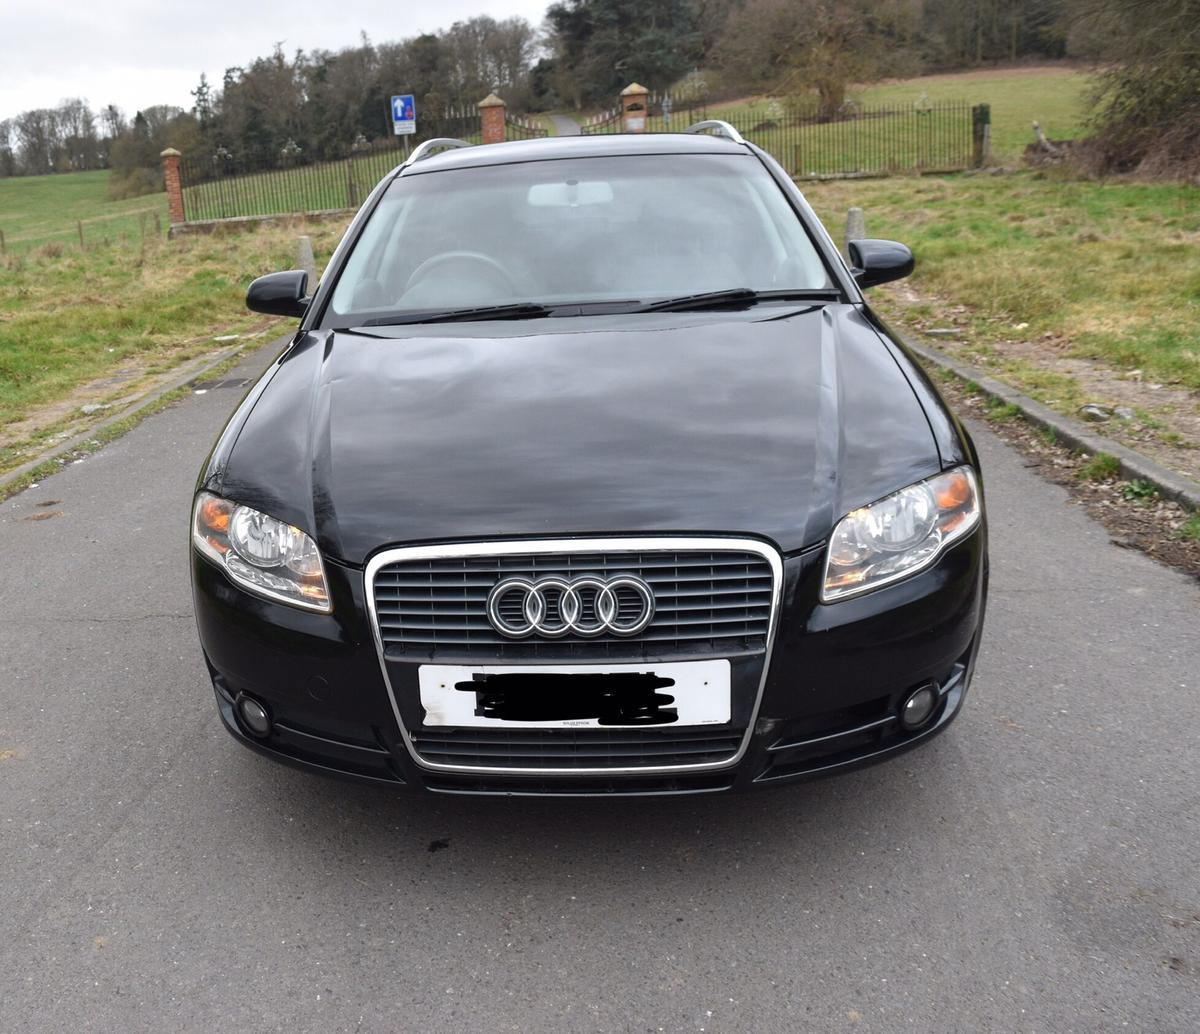 Audi A4 B7 1 9tdi in Chiltern for £1,695 00 for sale - Shpock